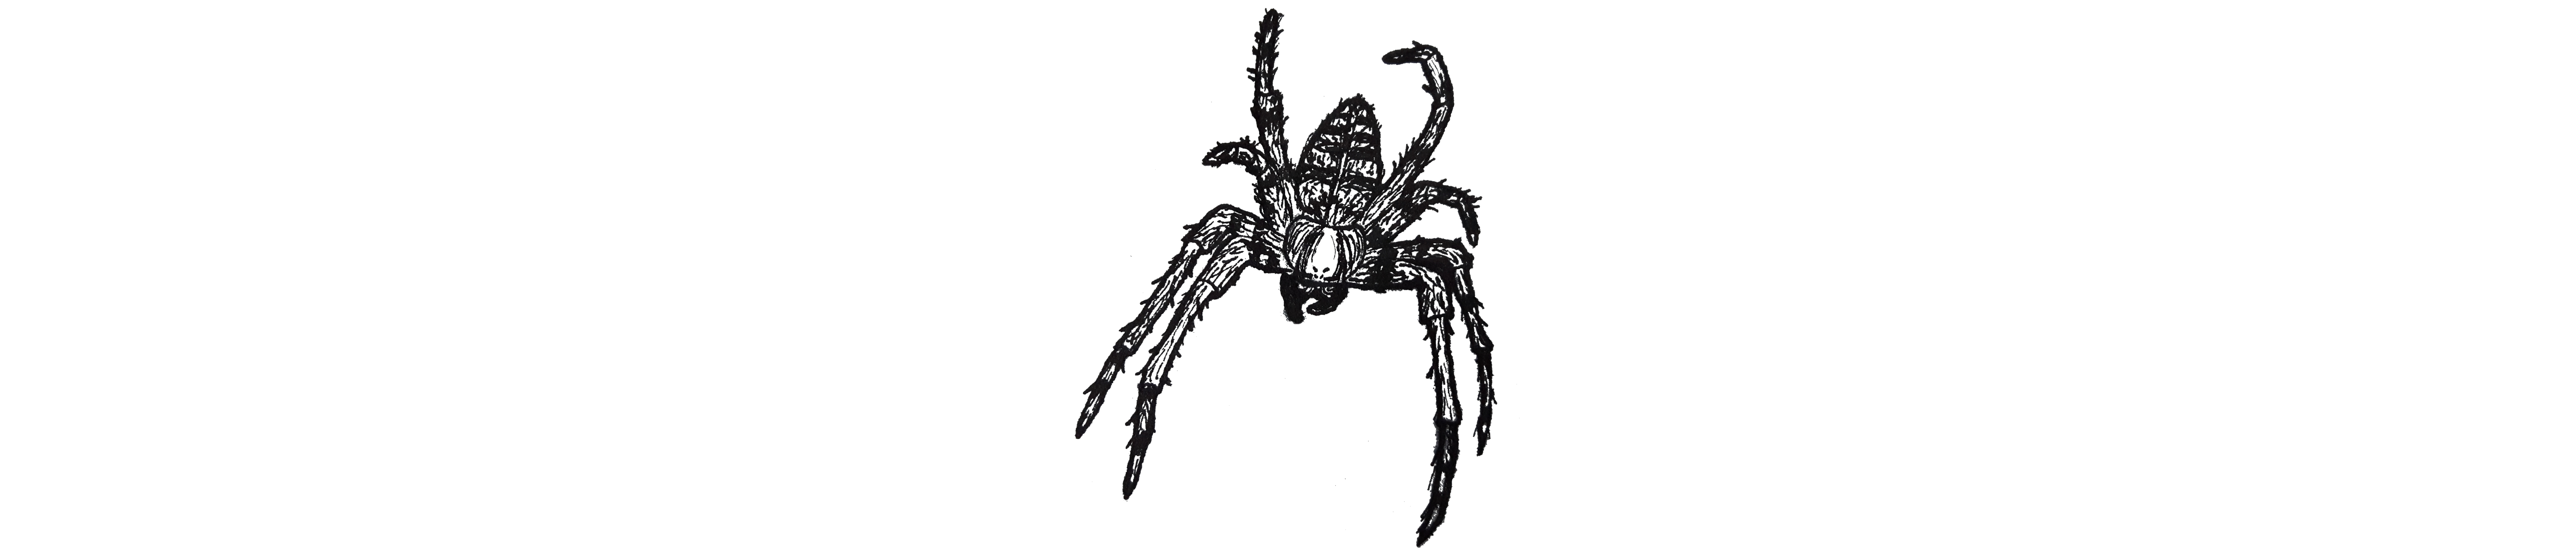 Ink Drawing of a Spider